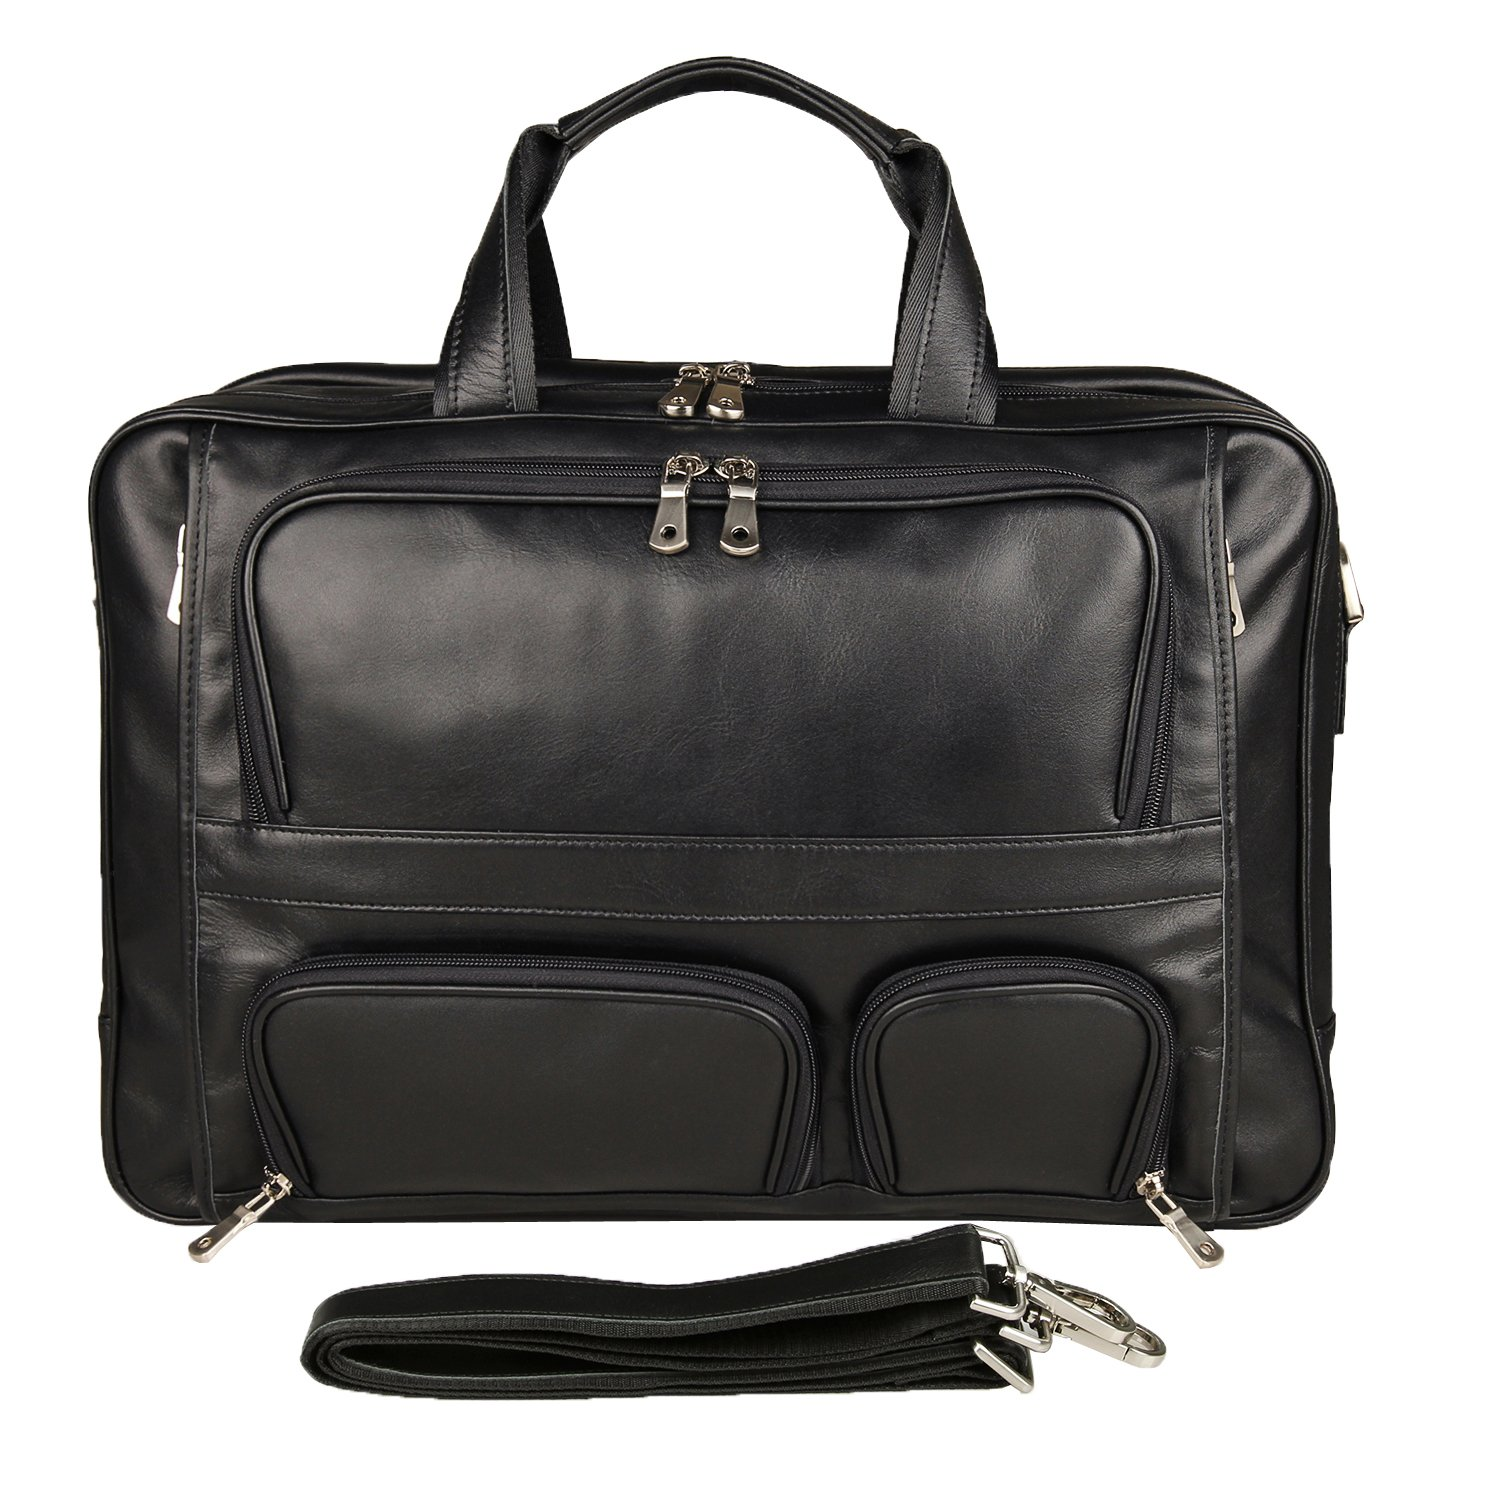 Texbo Men's Genuine Leather Business Trip Briefcase Large Bag Fit 17'' Laptop by Texbo (Image #2)